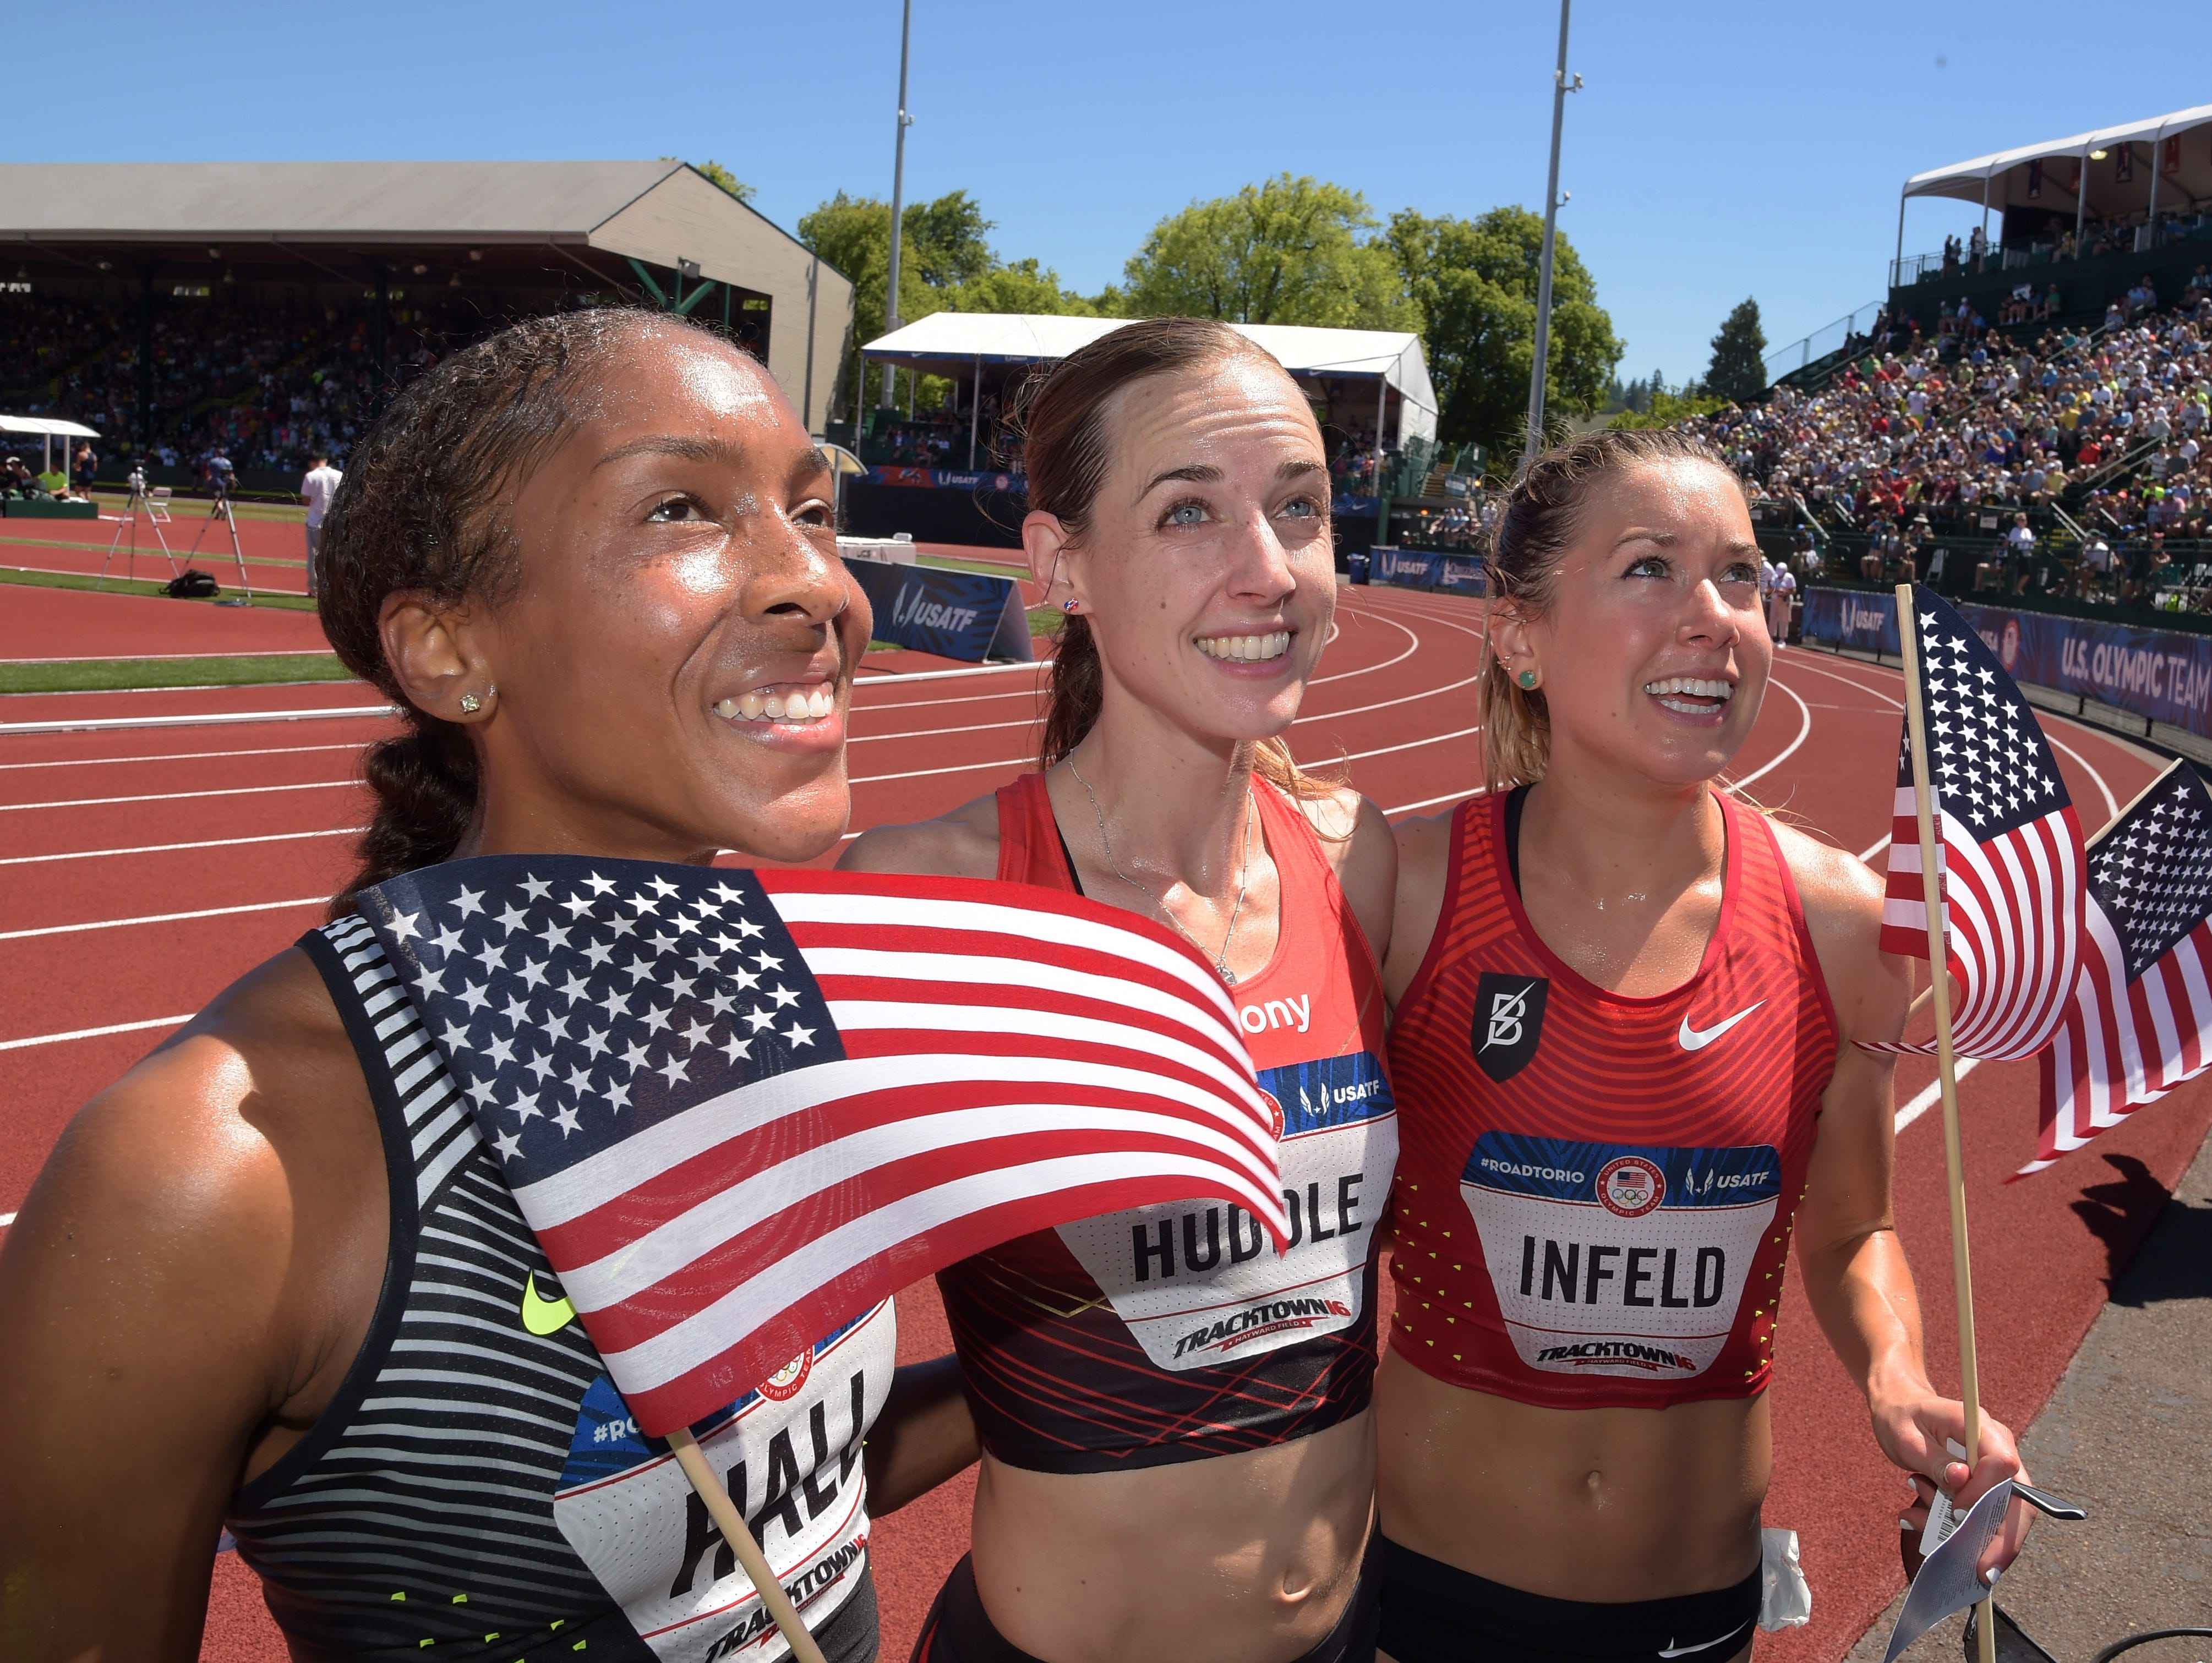 Marielle Hall (left), Molly Huddle (middle) and Emily Infeld (right) react after finishing the women's 10, 000m finals in the 2016 U.S. Olympic track and field team trials at Hayward Field.